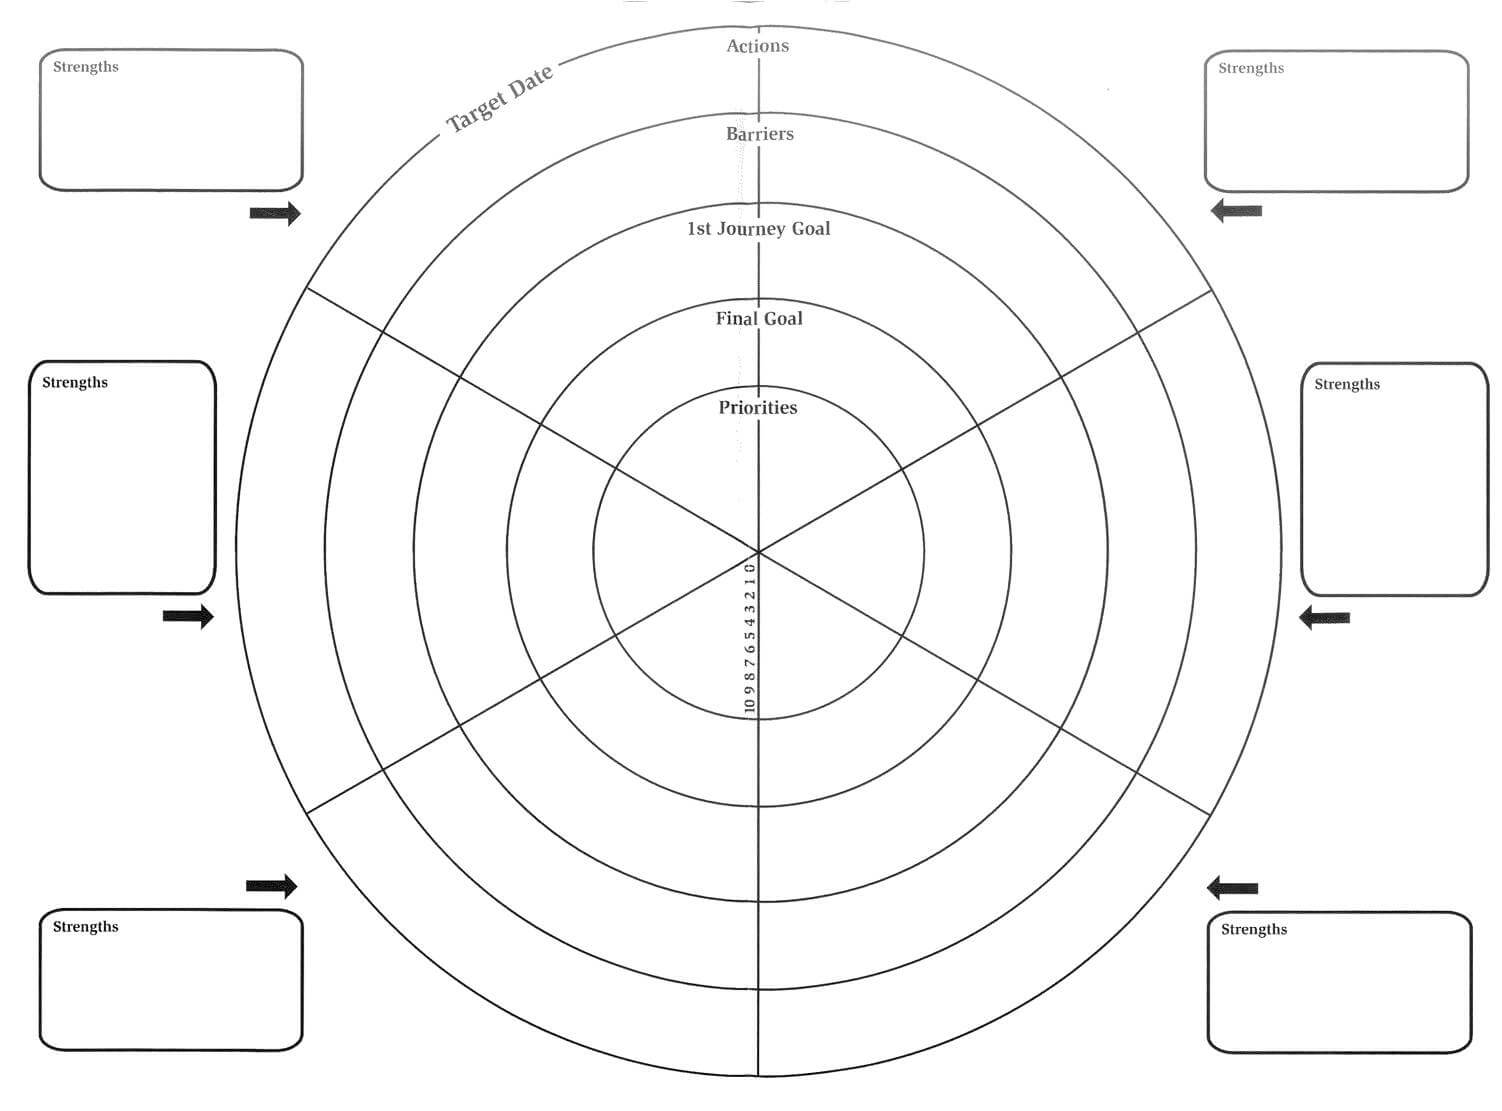 Pioneer - Developing High Potential: The Wheel Of Life Template Intended For Wheel Of Life Template Blank